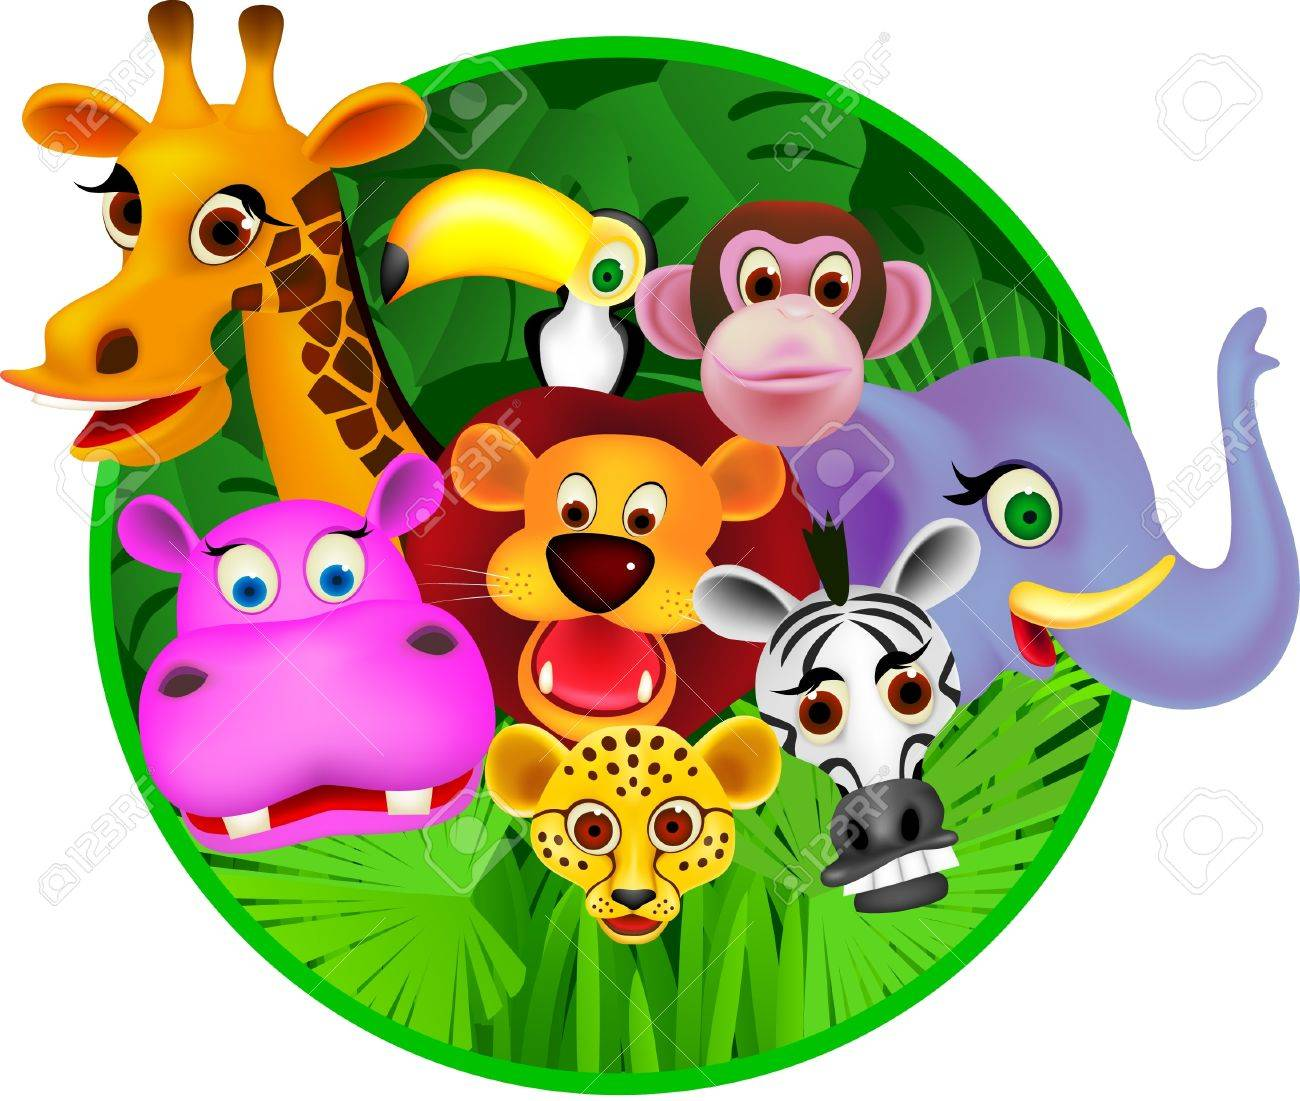 http://previews.123rf.com/images/dagadu/dagadu1105/dagadu110500001/9508687-Animal-carton-Stock-Vector-animals-jungle-cartoon.jpg